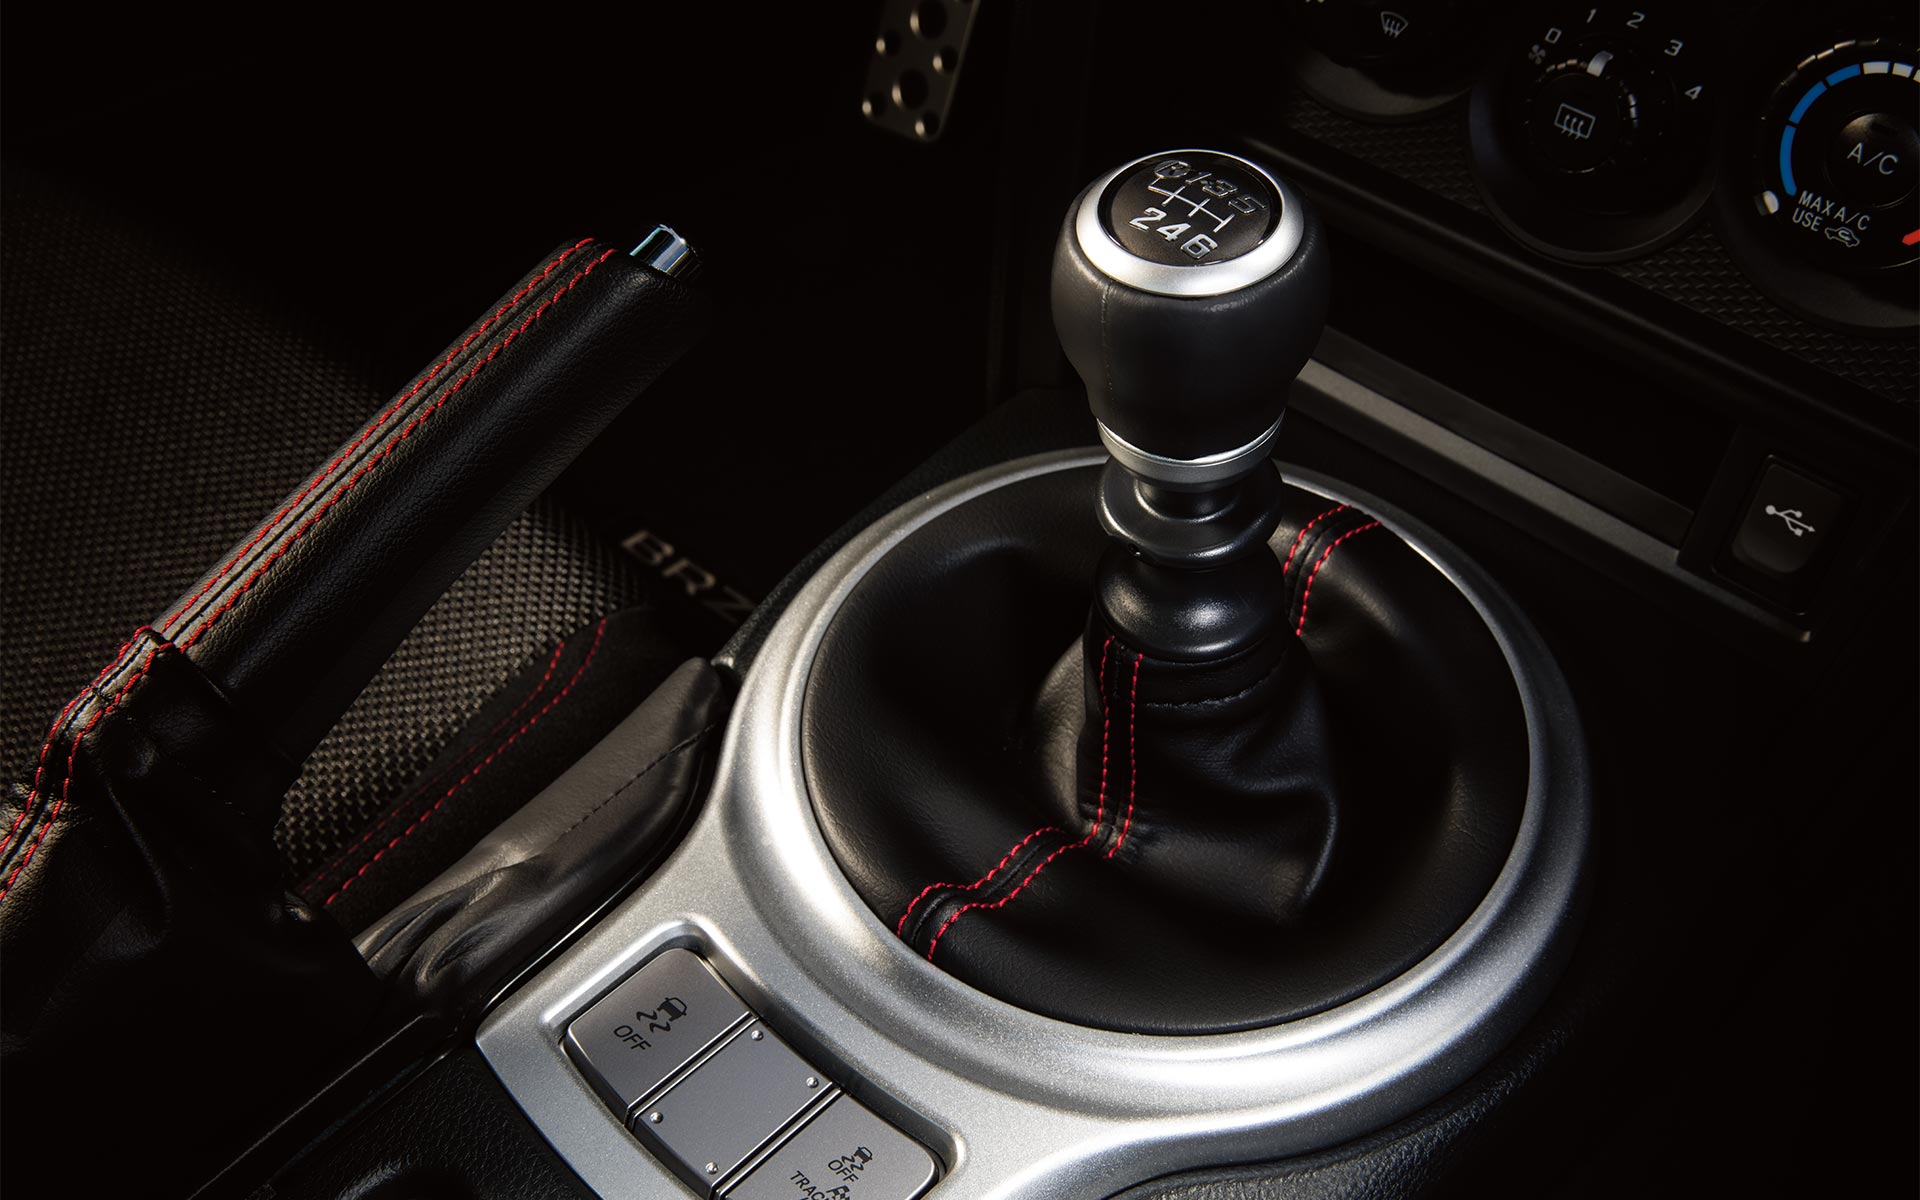 A close-up of the 6-speed manual transmission shifter in the 2020 BRZ.